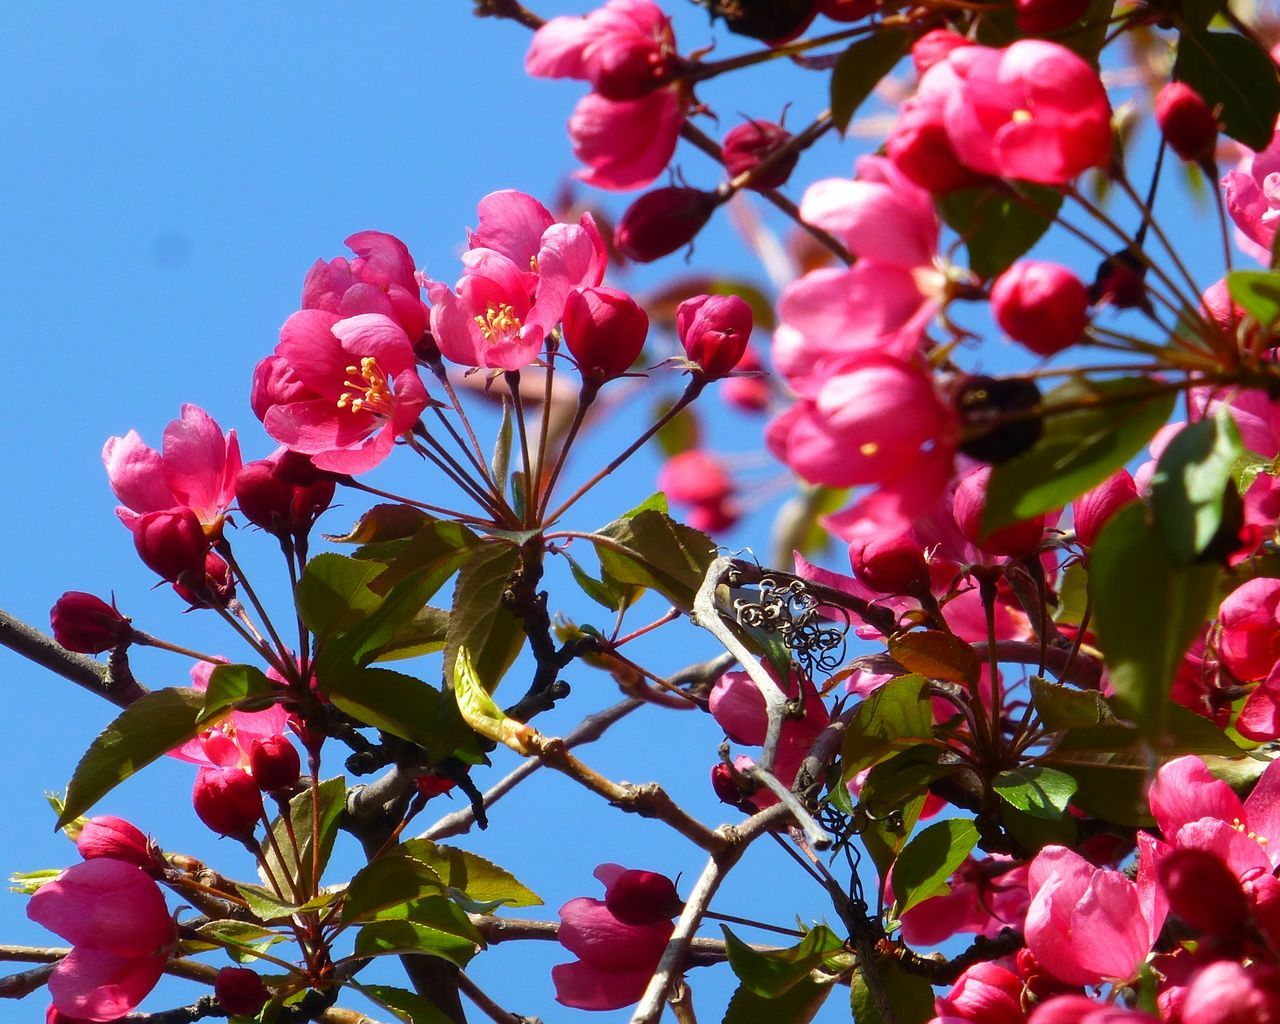 flower, growth, beauty in nature, nature, fragility, tree, pink color, petal, low angle view, freshness, no people, day, branch, outdoors, blooming, springtime, plant, close-up, flower head, bougainvillea, sky